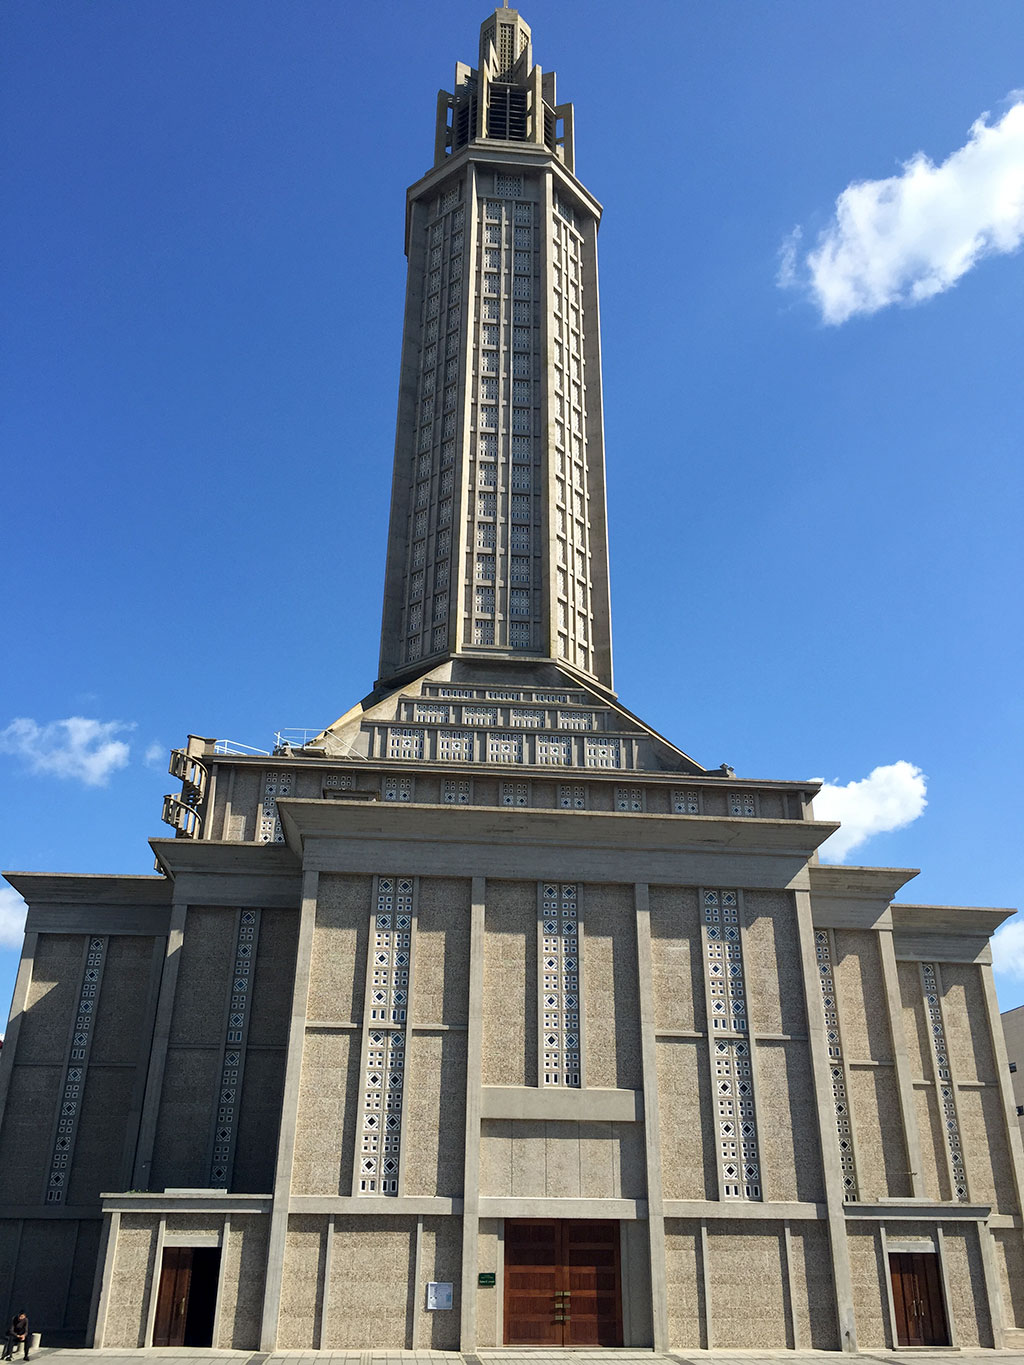 Le Havre's St. Joseph chruch with its high tower